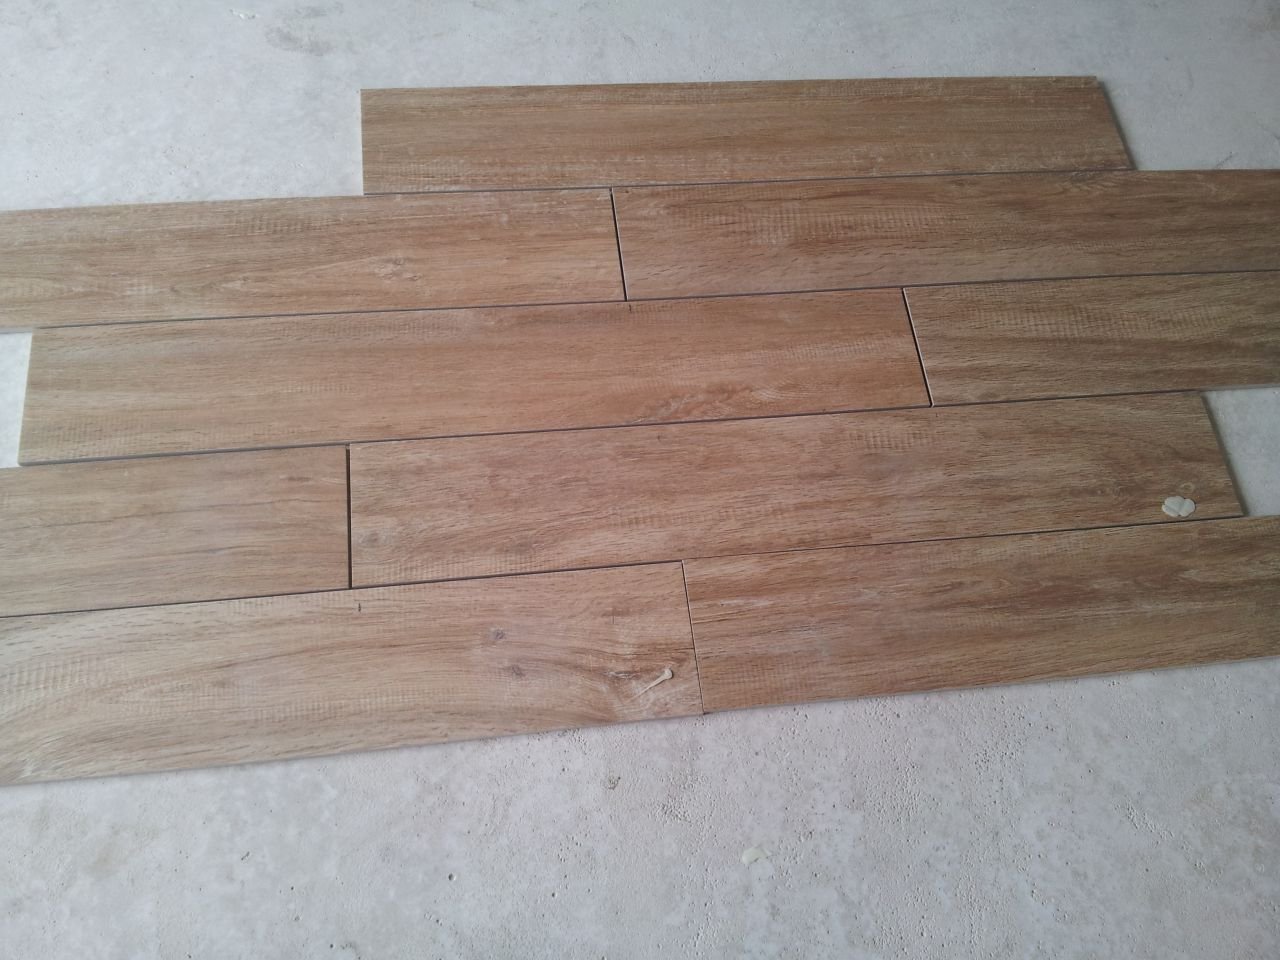 Sens et technique de pose pr carrelage imitation parquet r solu 8 messages - Pose stratifie sur carrelage ...